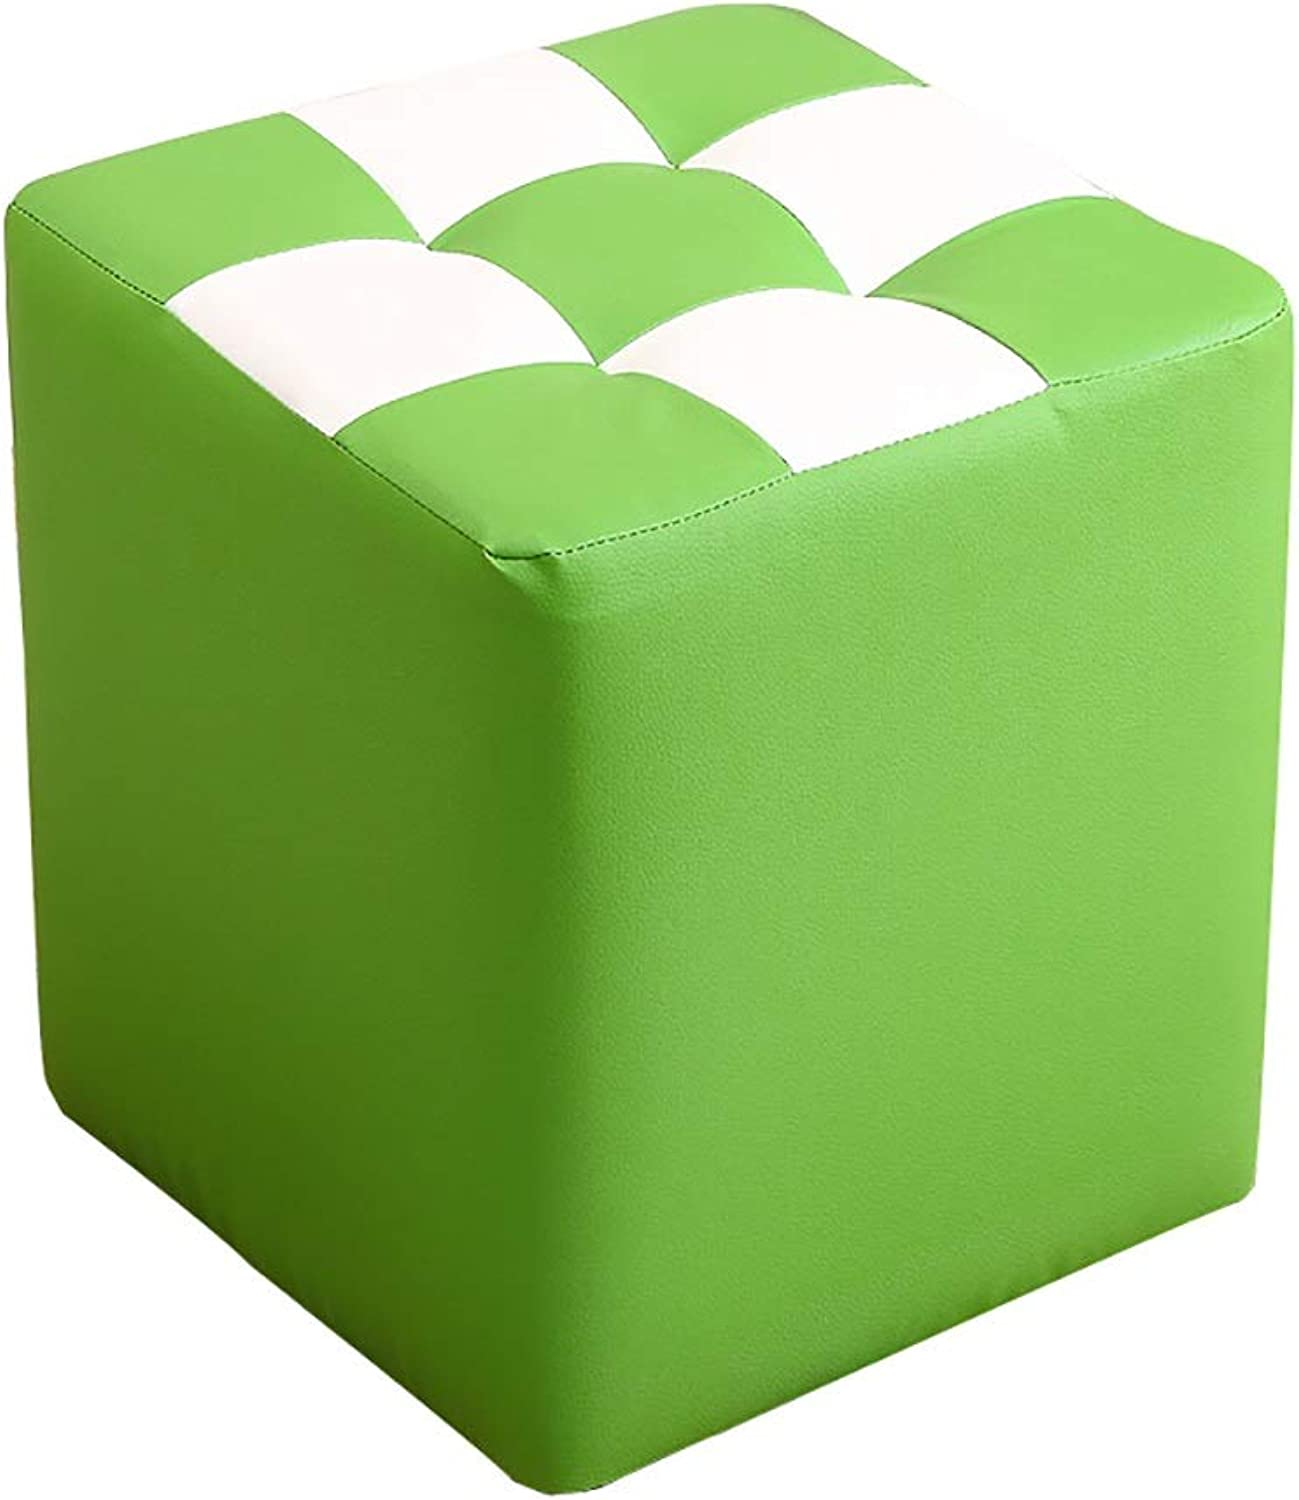 Square Footstool shoes Bench Makeup Stool Sofa Stool Artificial Leather Breathable wear Smooth and Easy to Clean 32  35cm (5 colors) (color   Green)